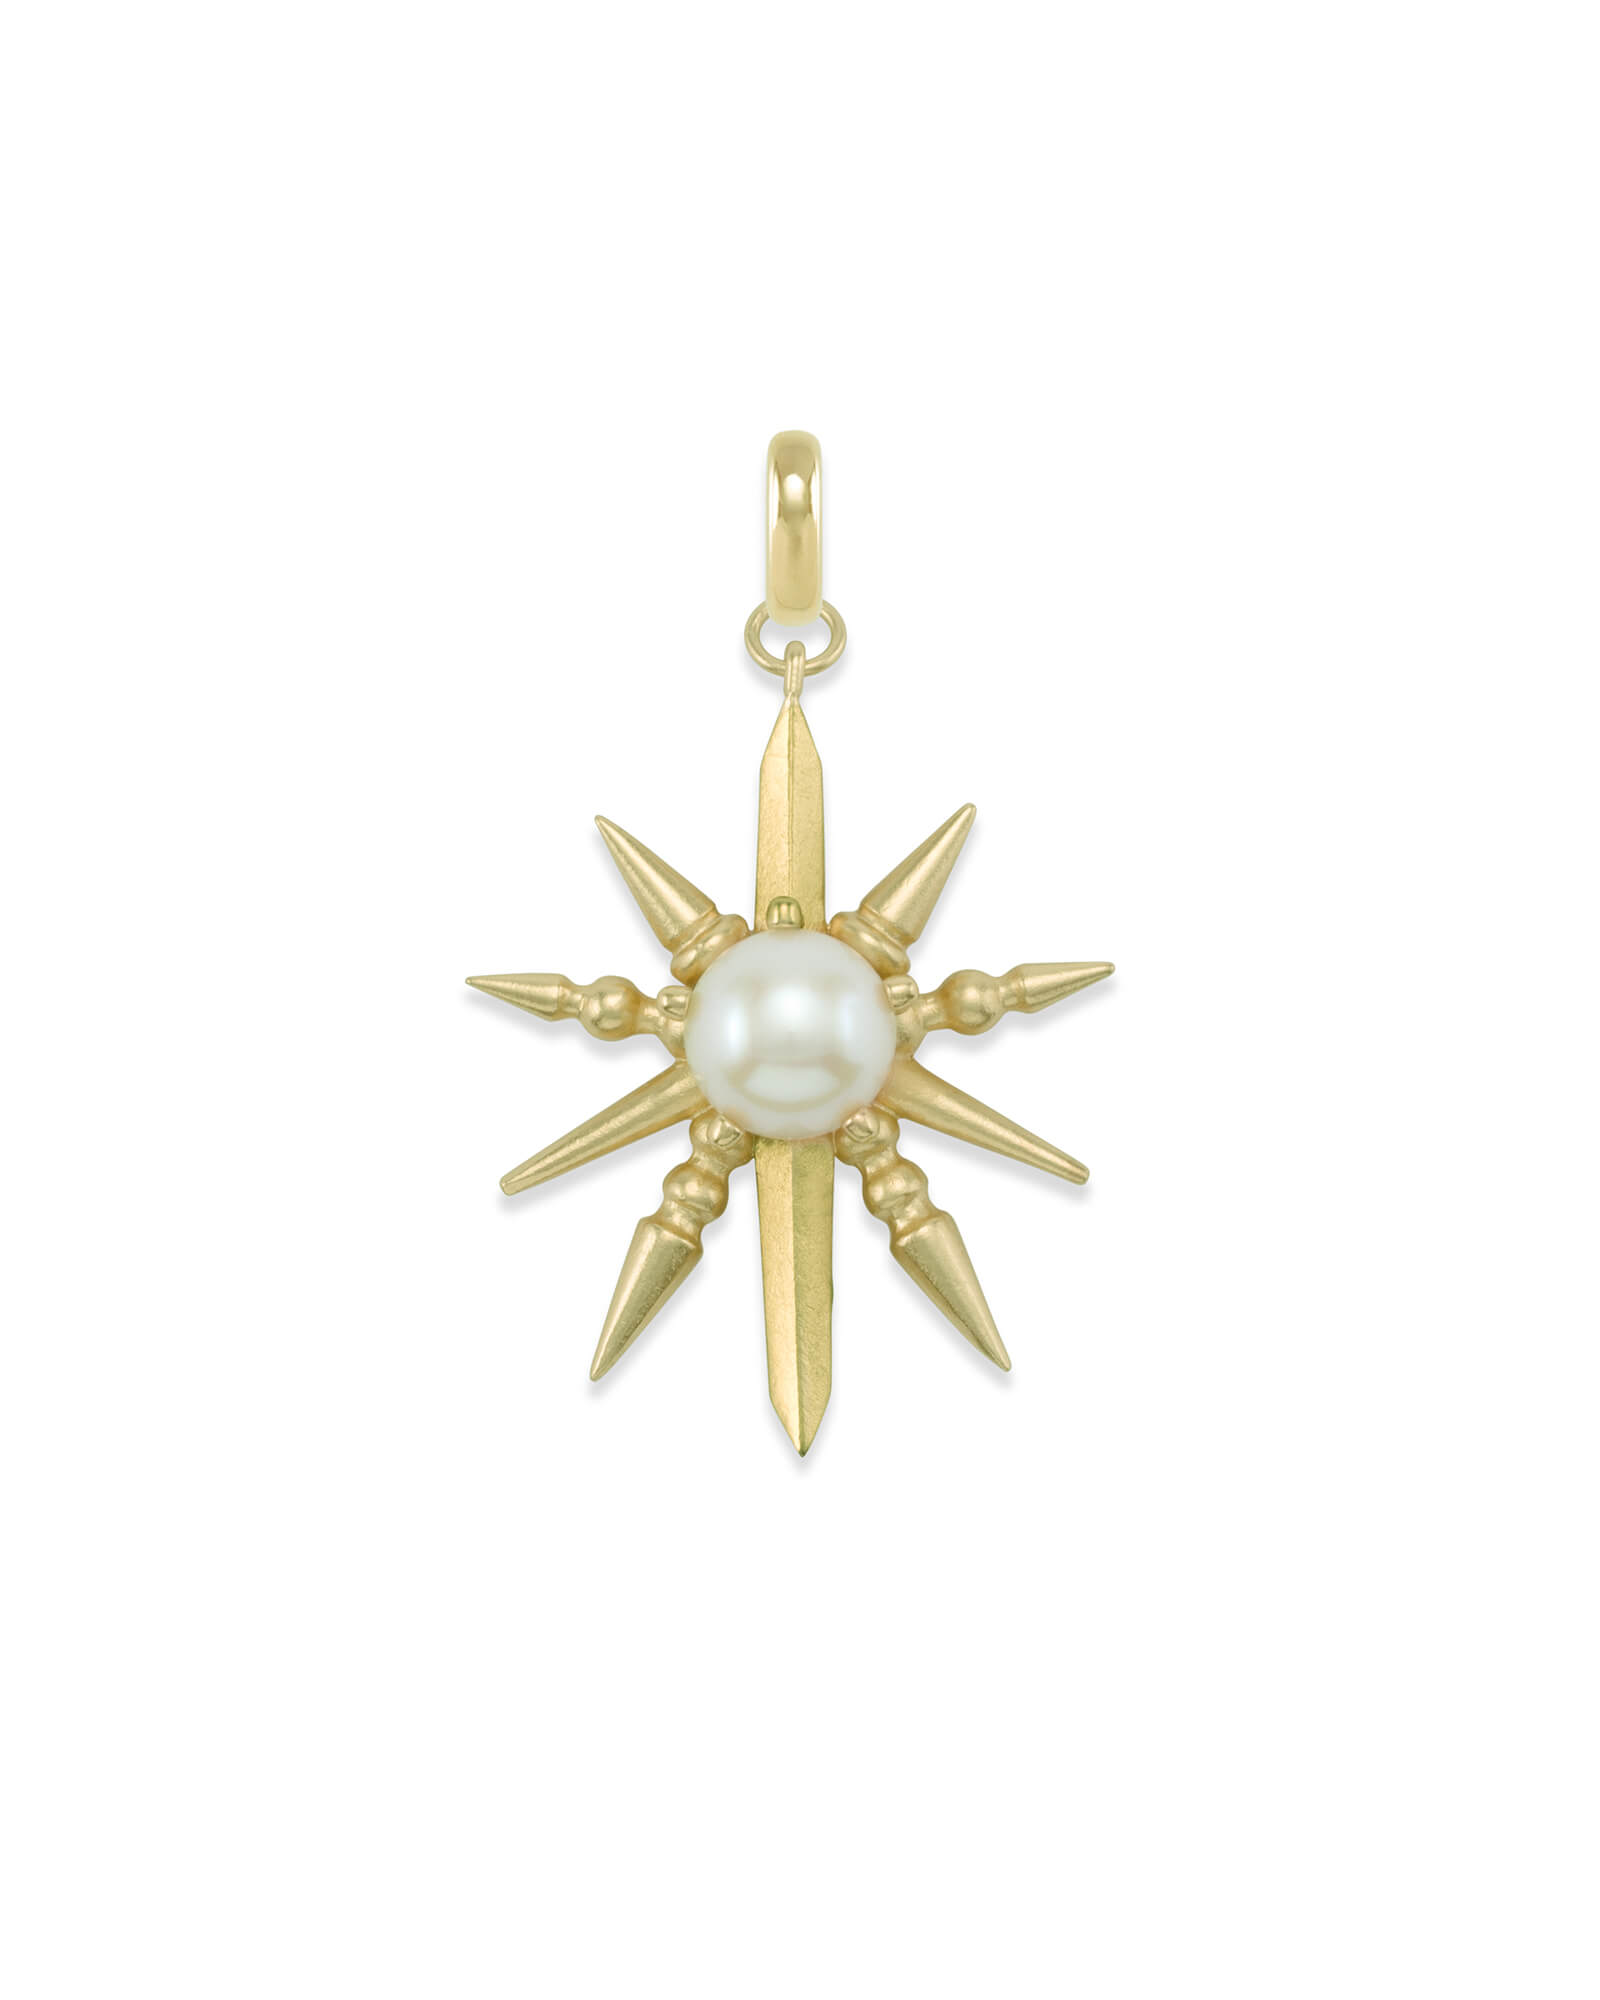 Sunburst with Pearl Charm in Gold